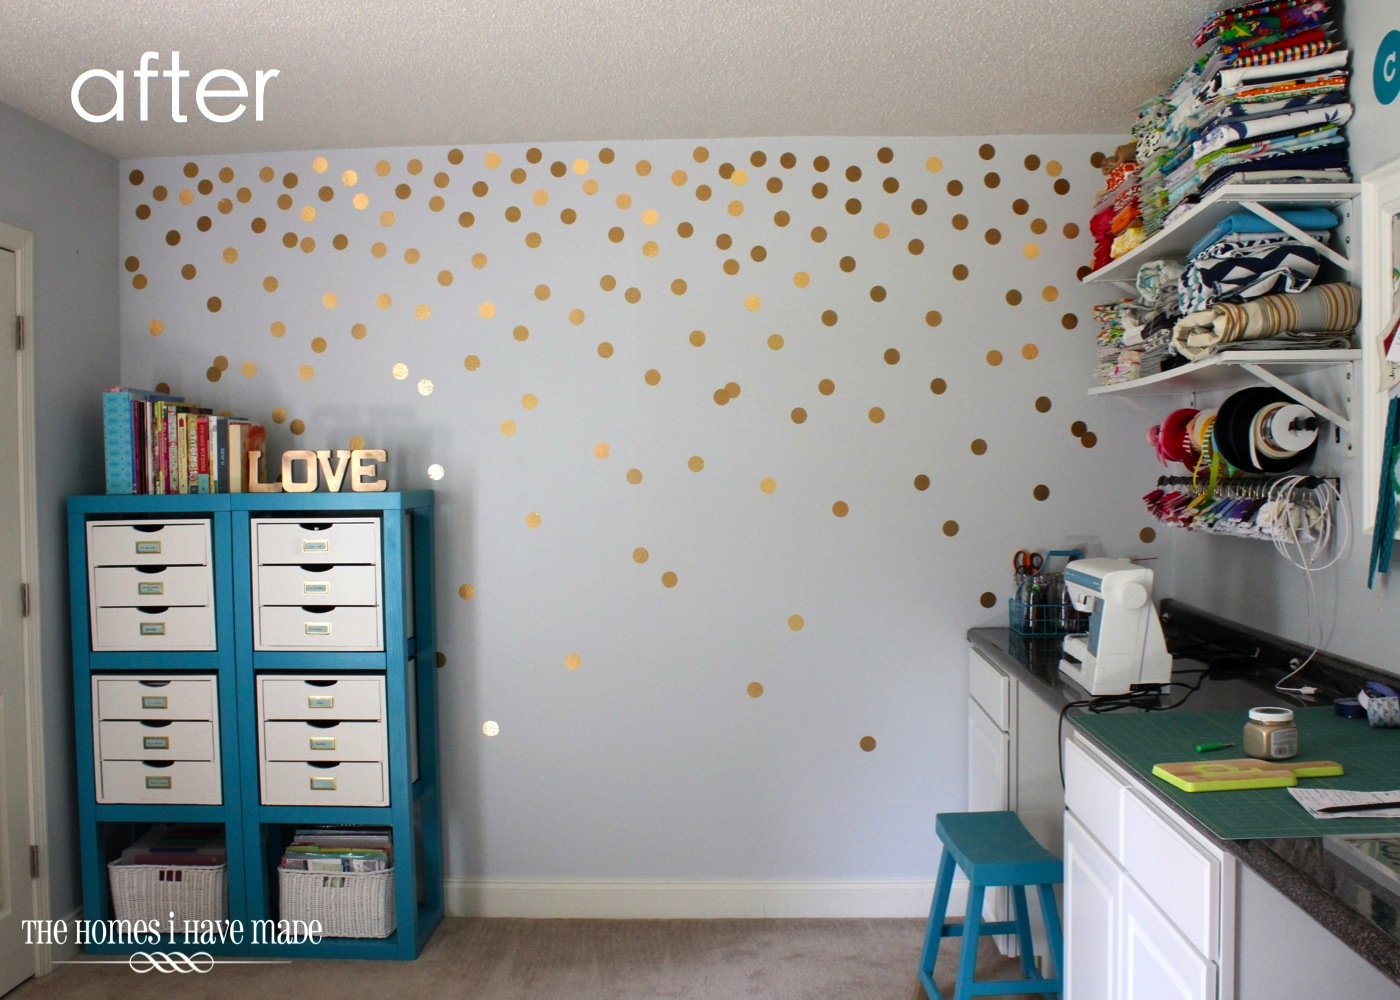 Diy gold polka dot wall the homes i have made amipublicfo Images